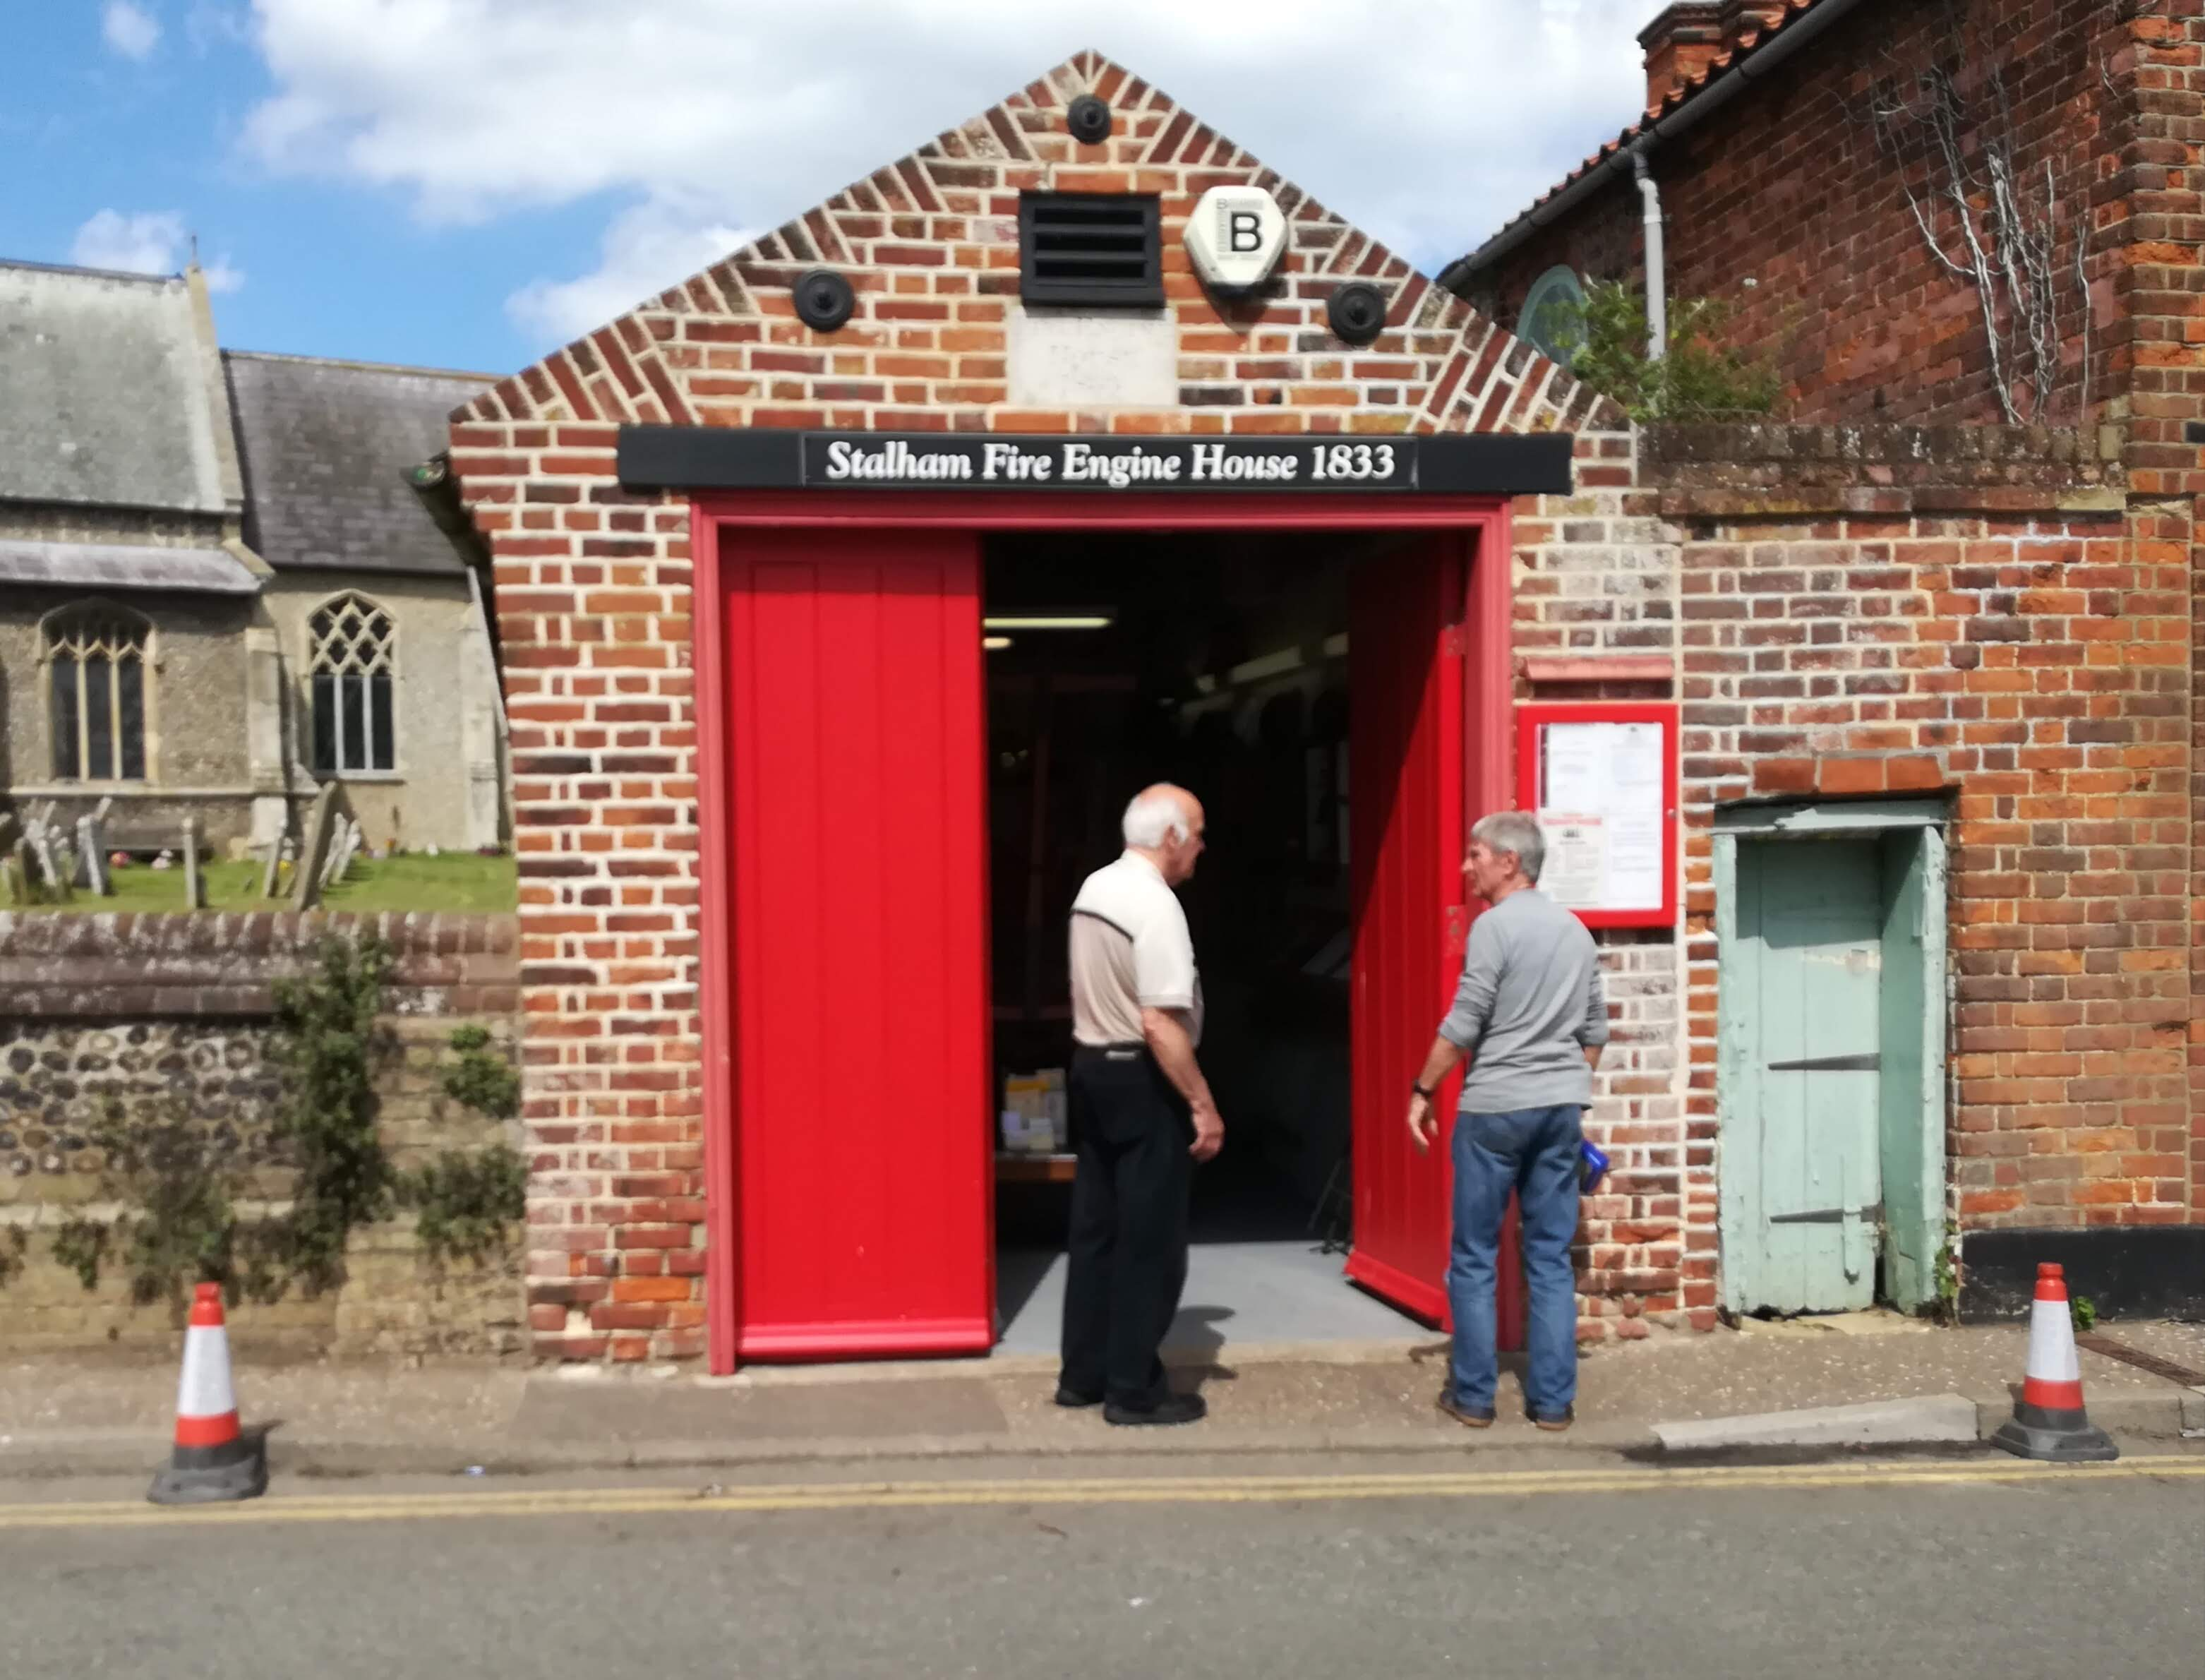 Exterior, showing fire engine house with open doors (lock-up to right with green door)